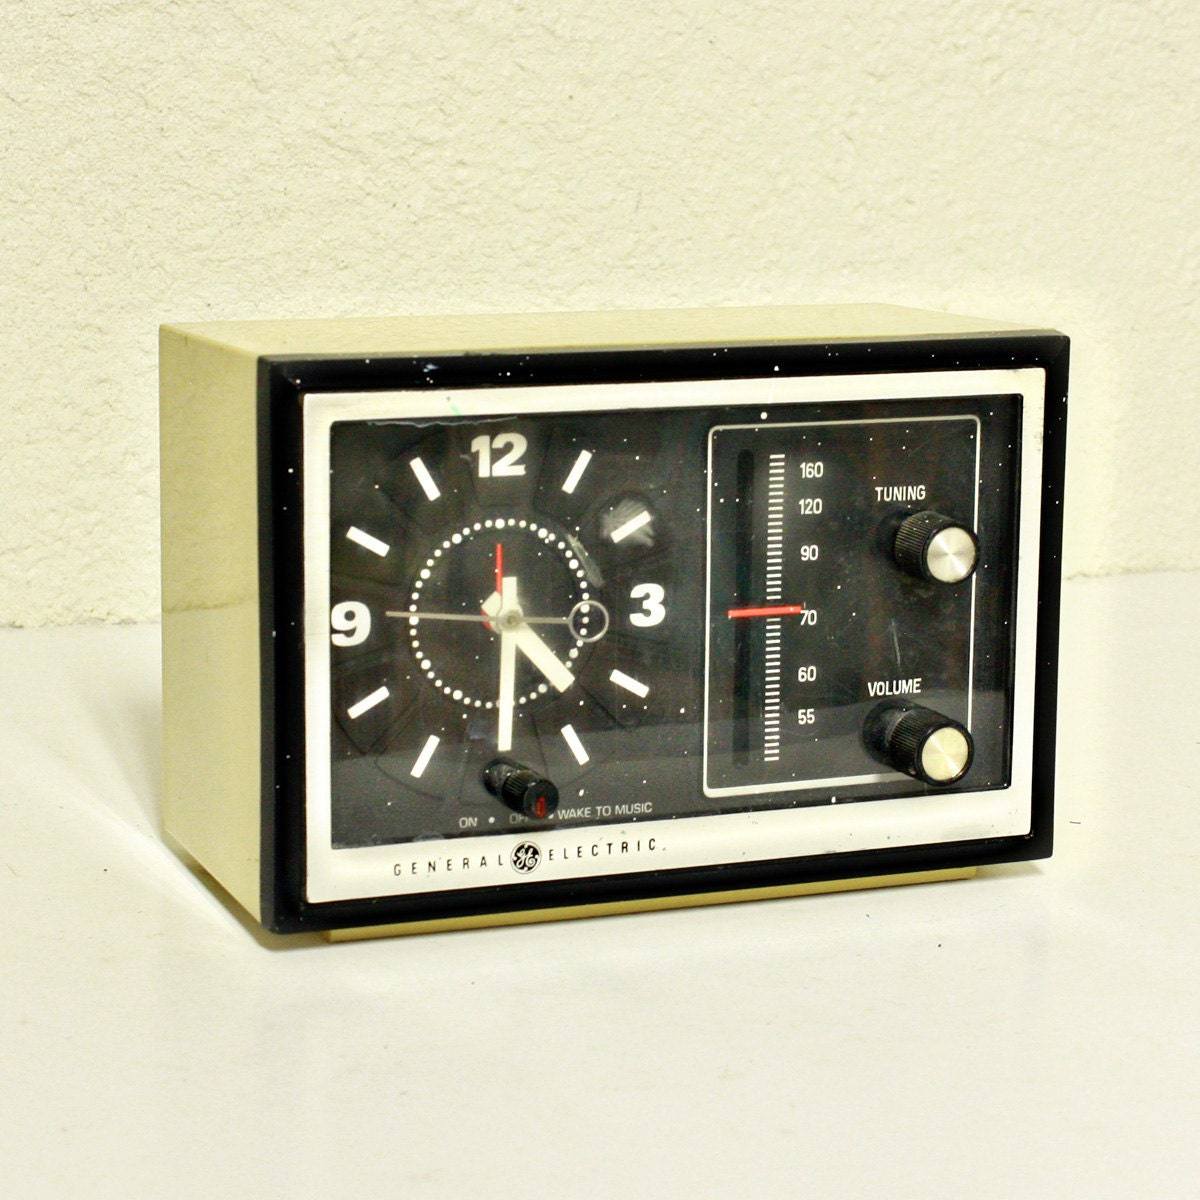 Vintage clock radio clock radio alarm clock General